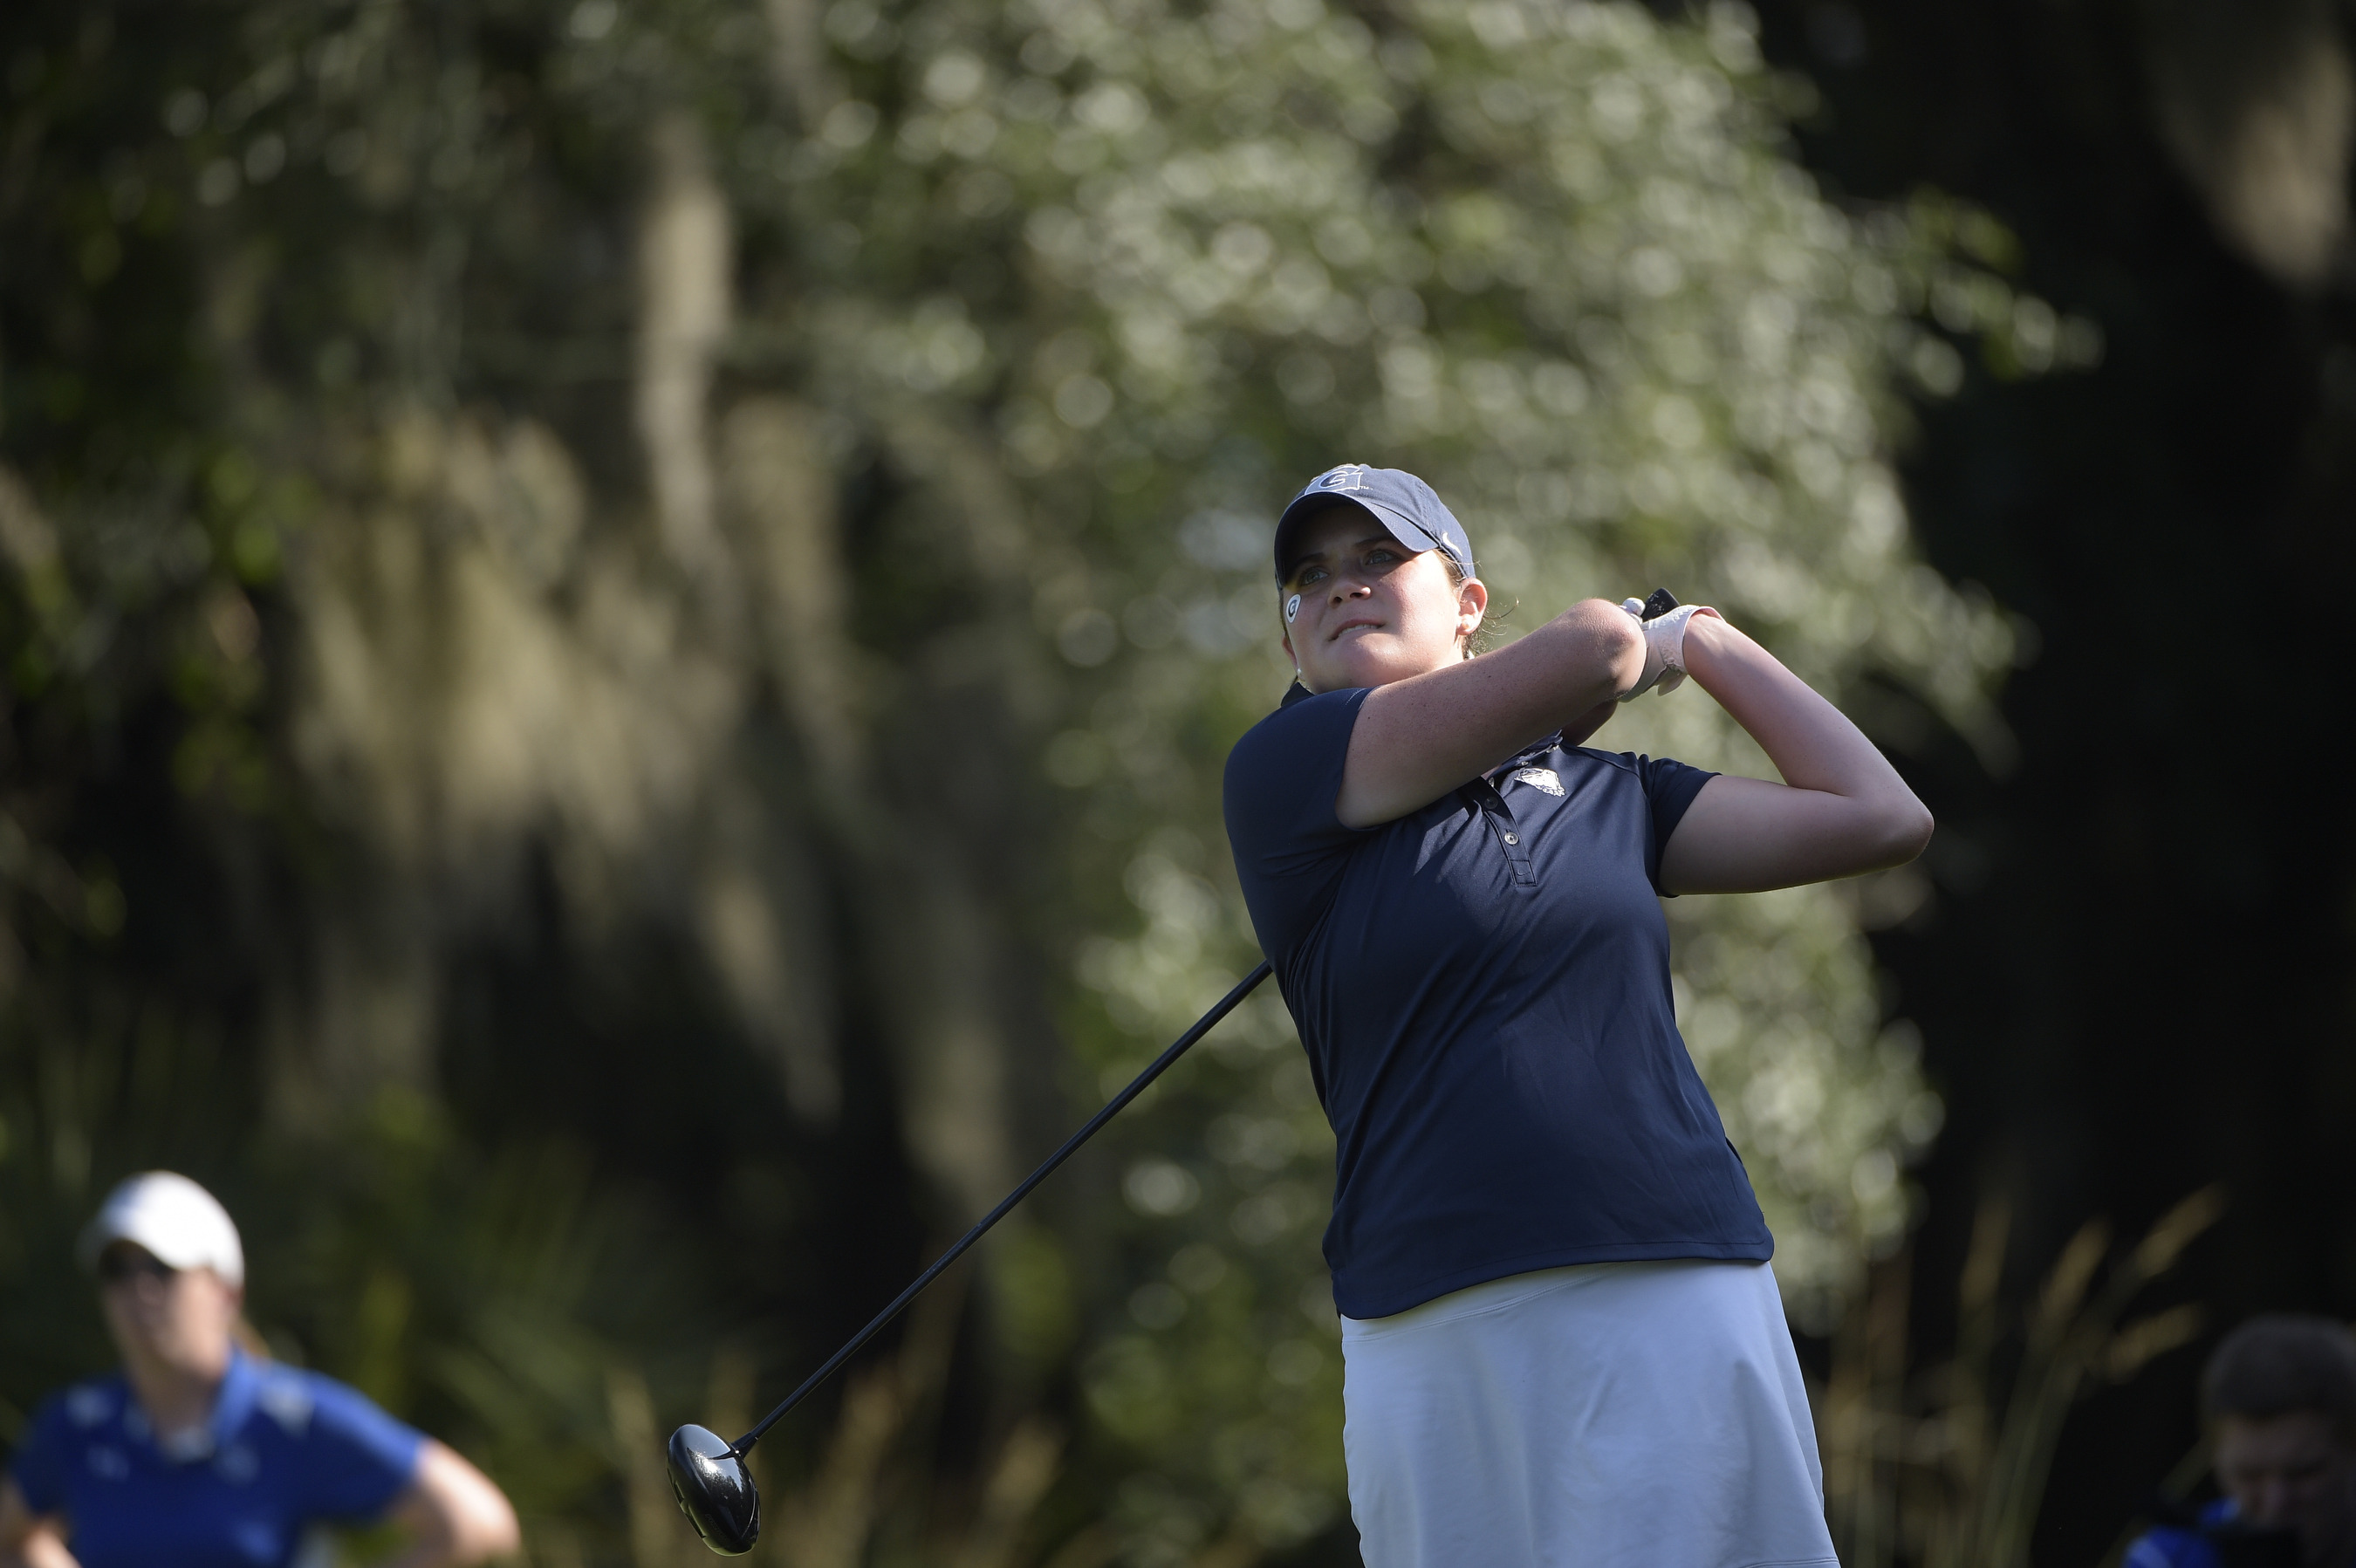 The Georgetown University women's golf team will begin play in the 11th Annual Hoya Invitational on Monday morning at Four Streams golf course in Beallsville, Md.